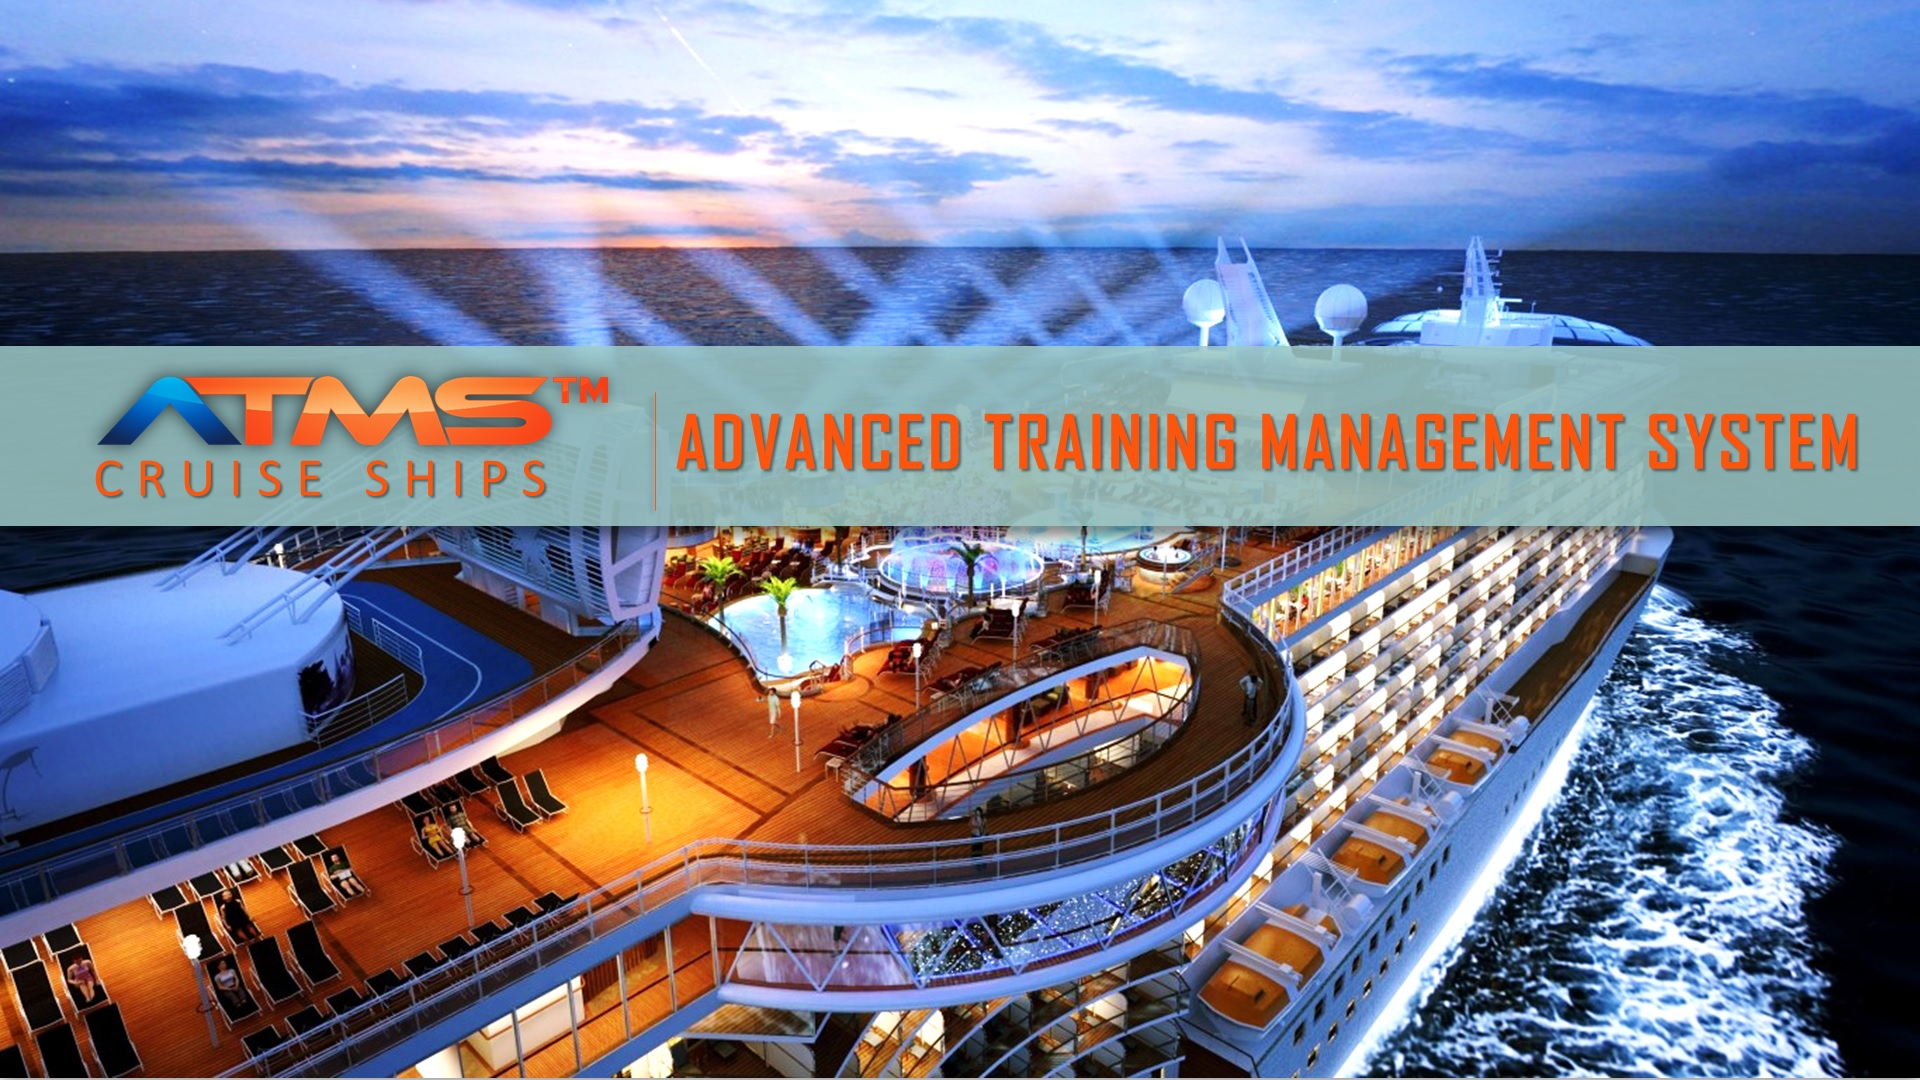 Cruise-Ship-Training-Systems-Slide-1